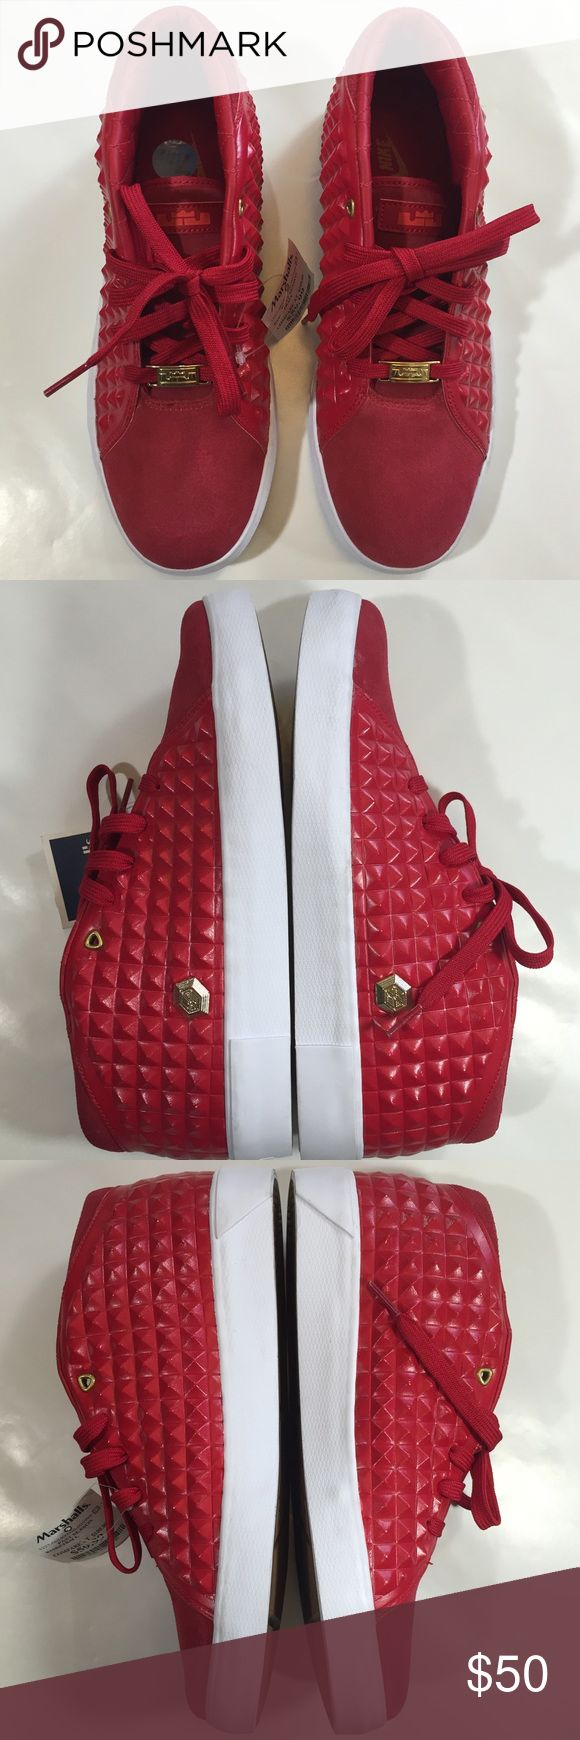 Nike lebrons James XIII lifestyle shoes red Shoes were bought at Marshalls never worn the pair were the display at the store. Nike Shoes Sneakers